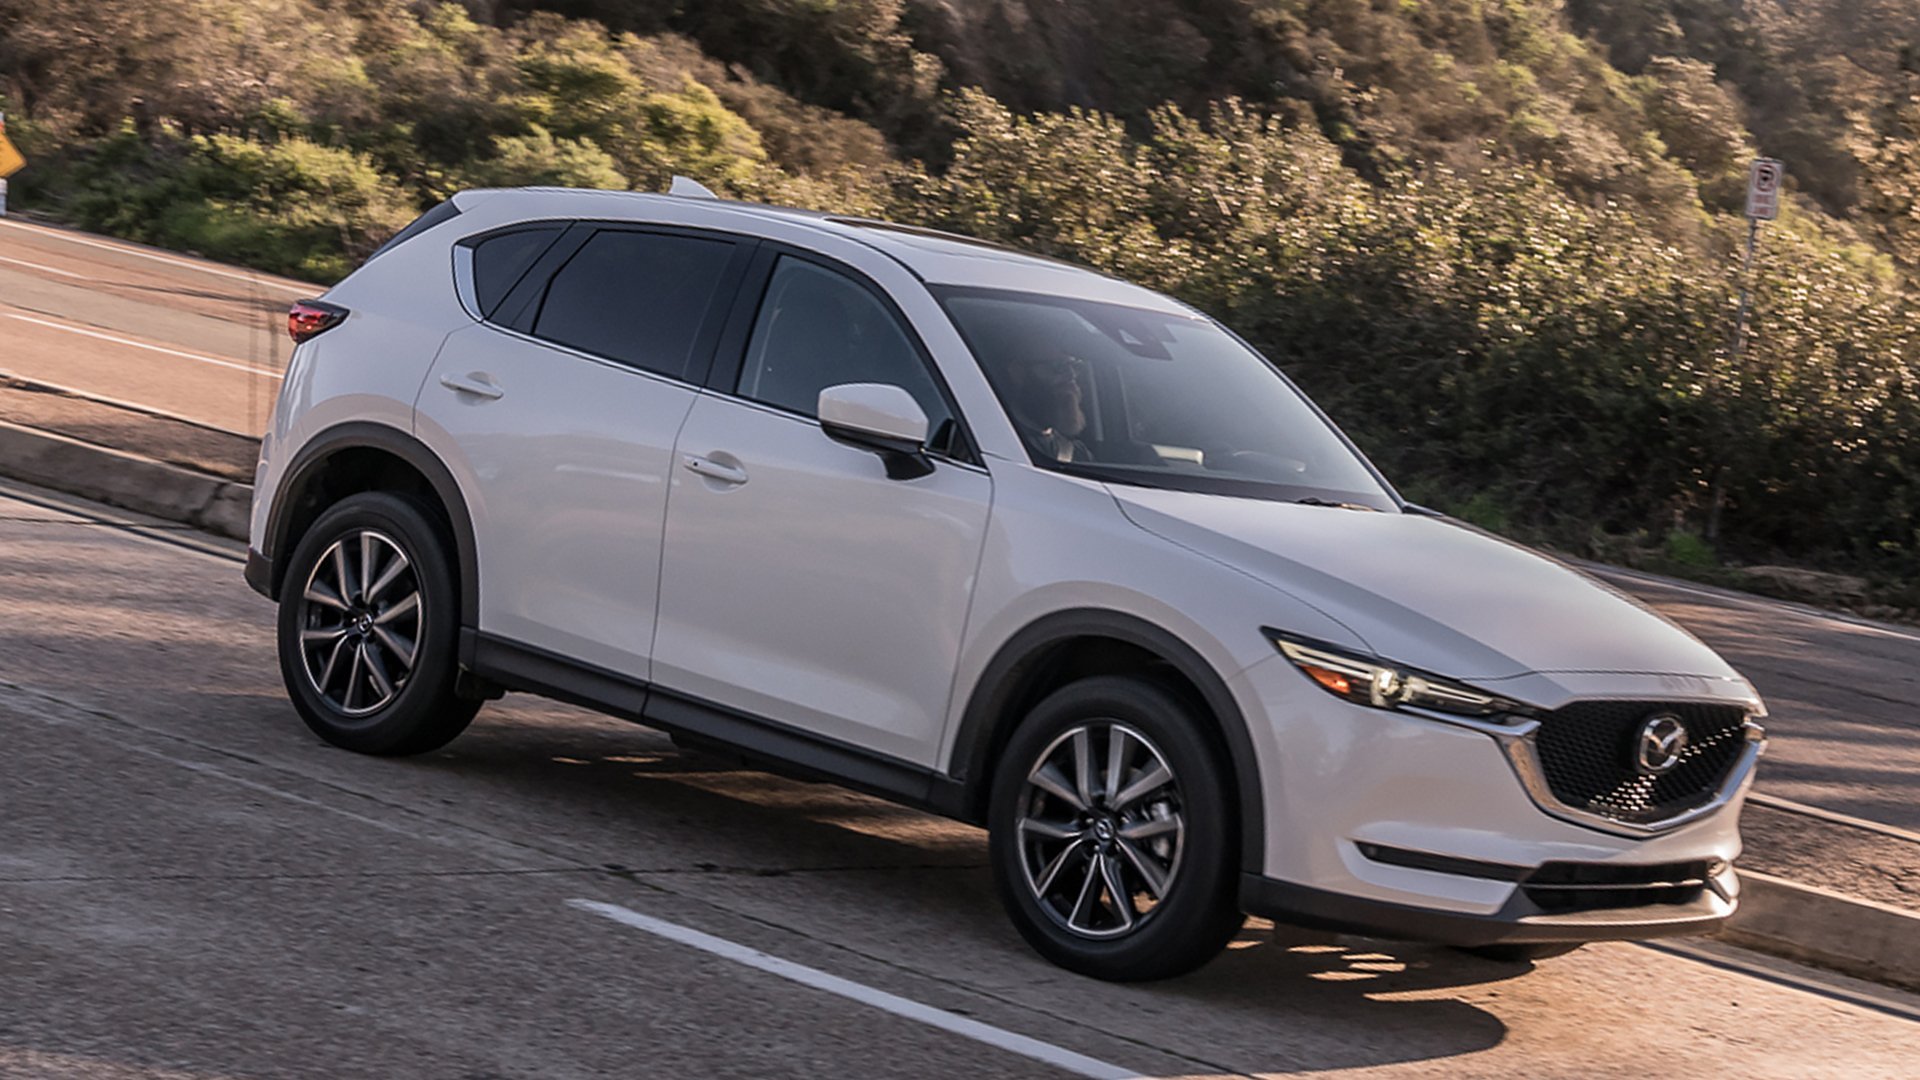 New 2019 Mazda 5 Exterior Changes